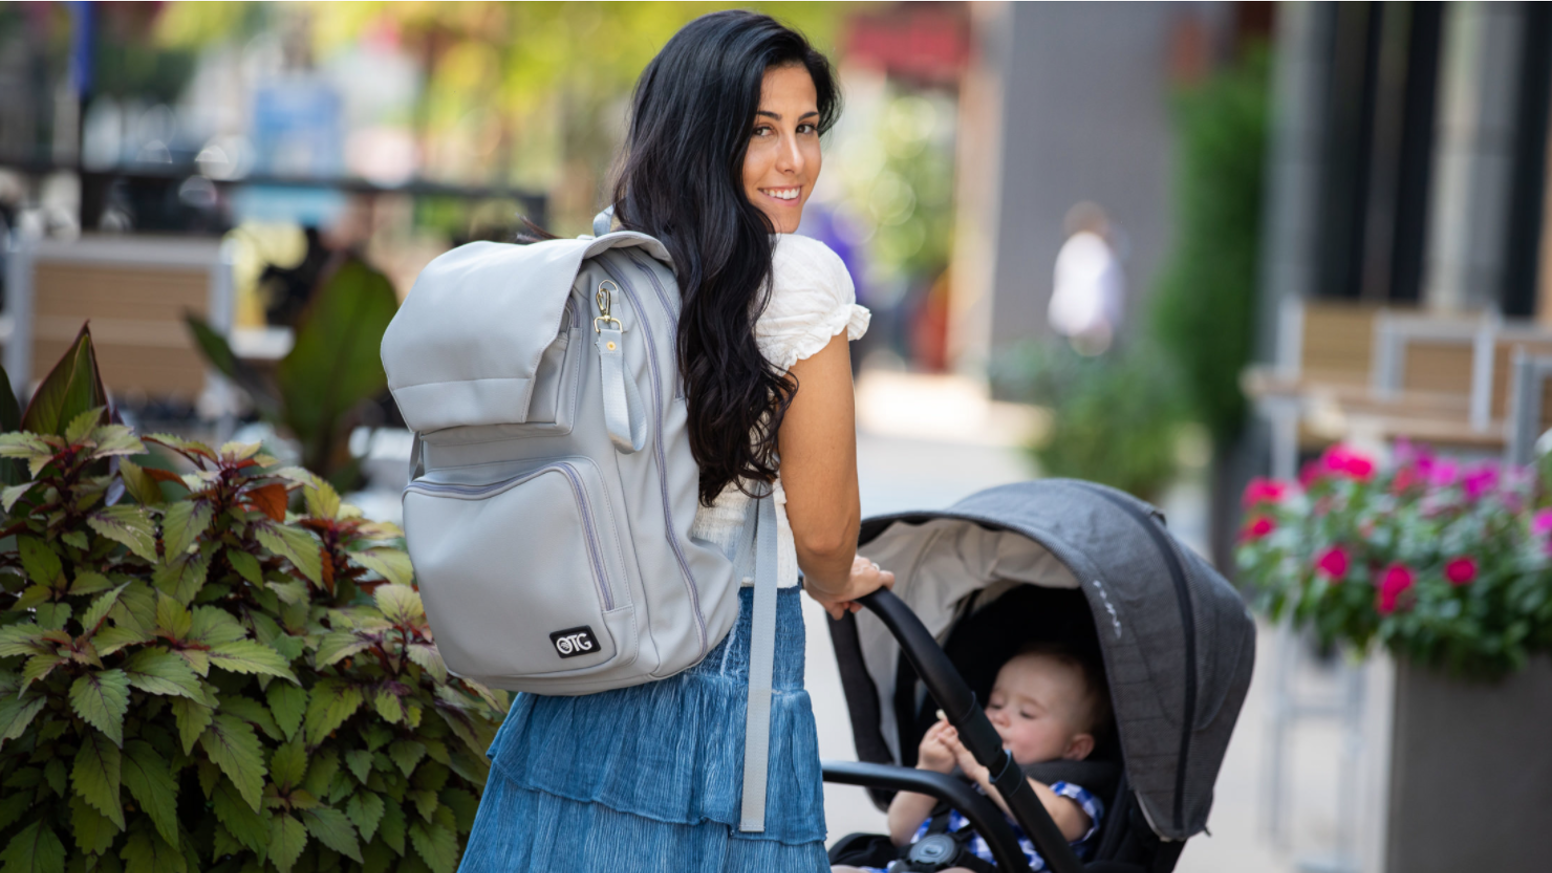 The diaper changing backpacks are entering production and will be available for purchase on otgbaby.com in February. Can't wait to order yours? Pre-order on Indiegogo for $60 off retail price.